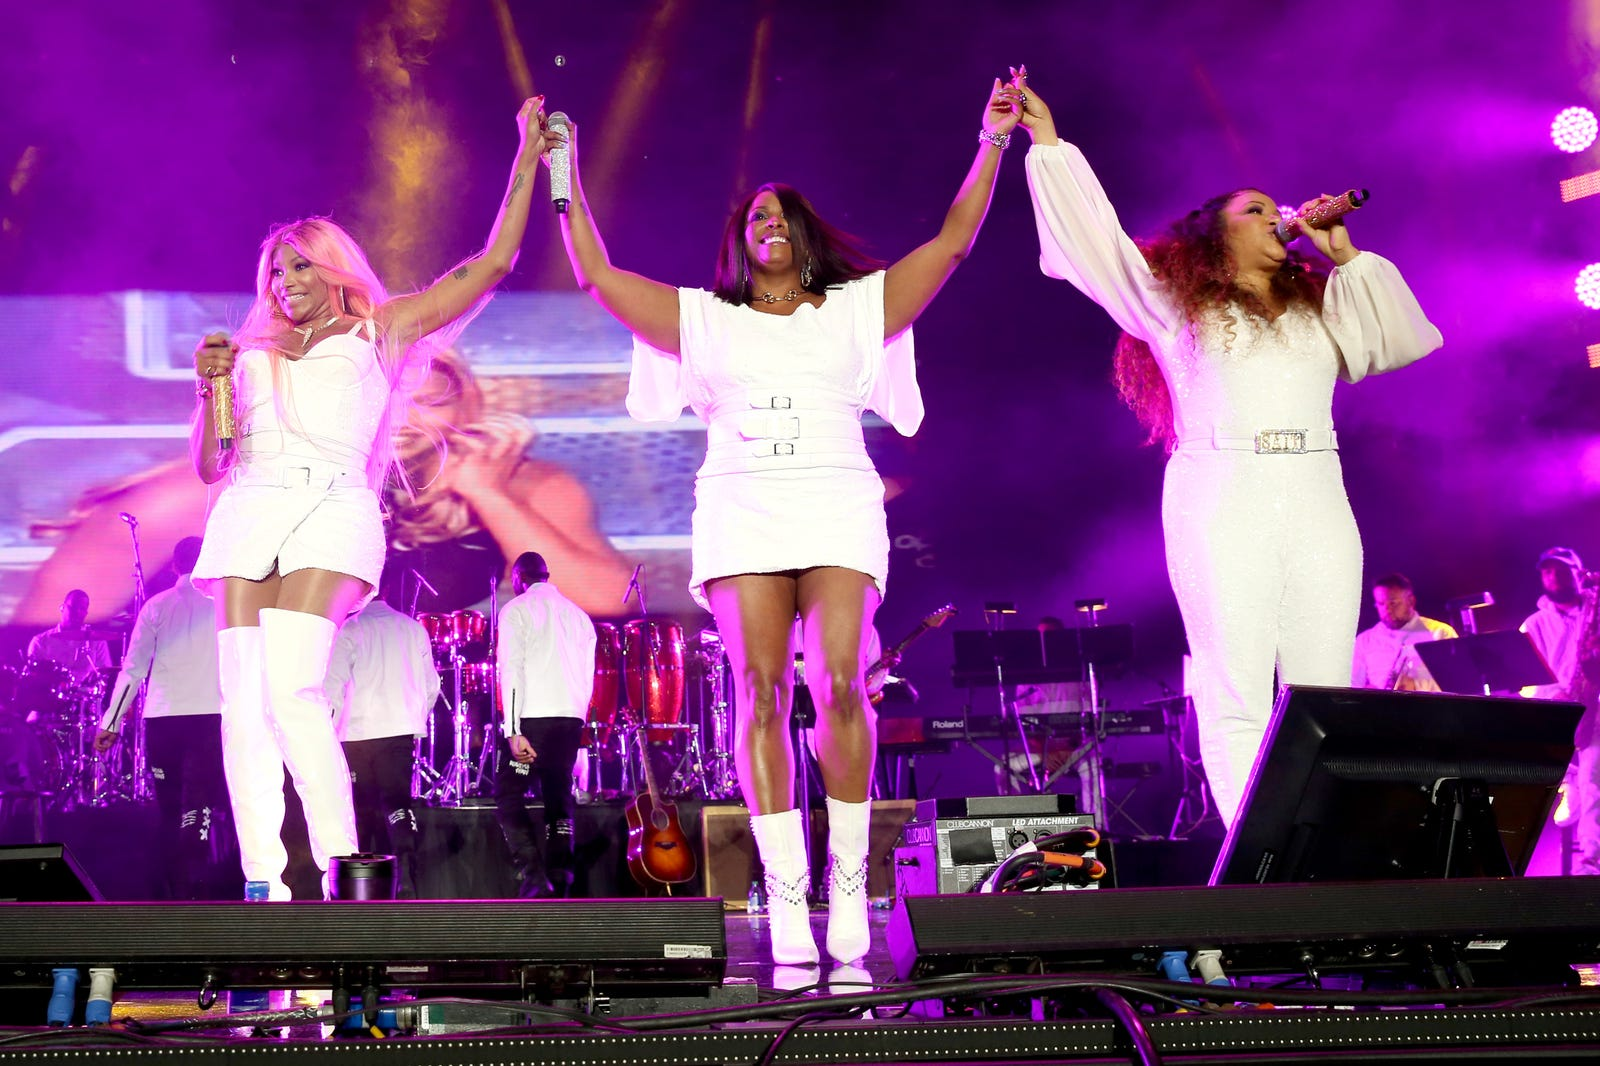 Sandra Denton, left, DJ Spinderella and Cheryl James of Salt-N-Pepa perform onstage during the 2018 Essence Festival presented By Coca-Cola, Day 2 at Louisiana Superdome on July 7, 2018 in New Orleans, Louisiana.